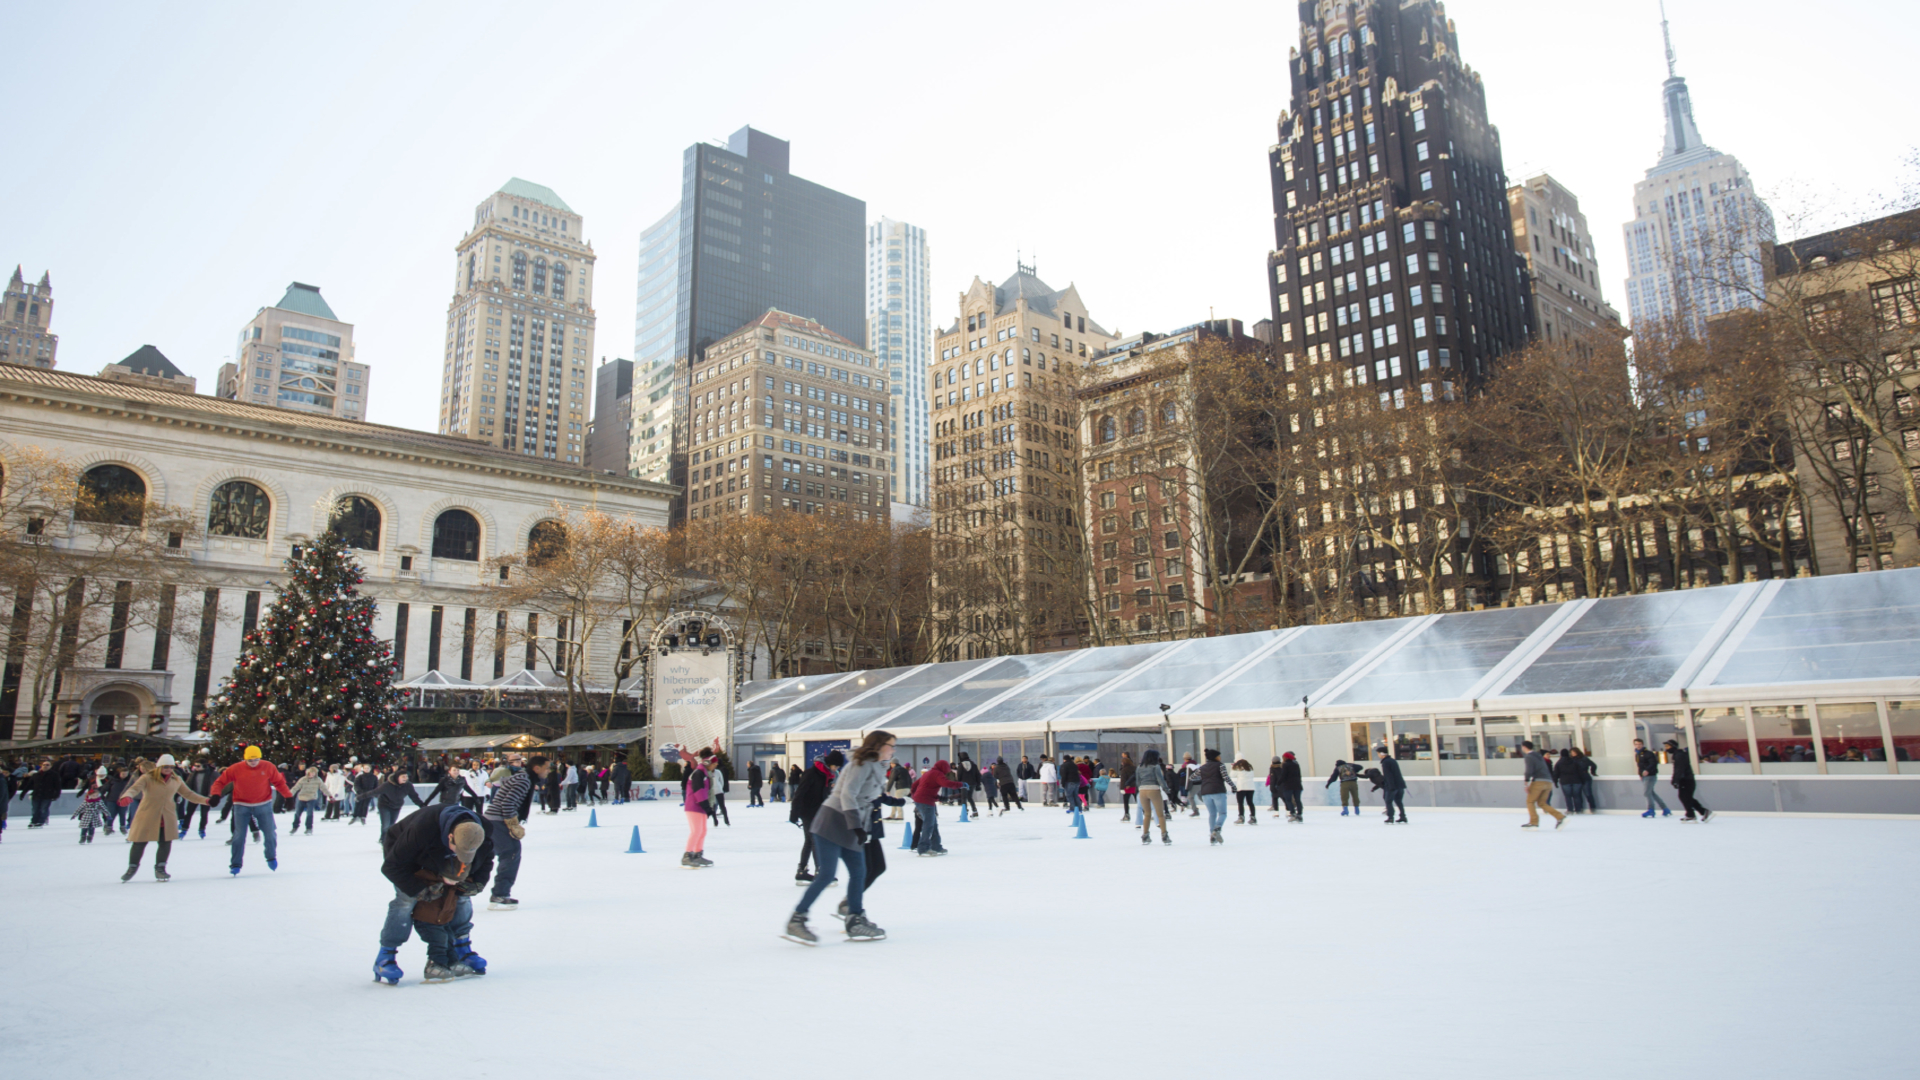 The Rink at Bryant Park